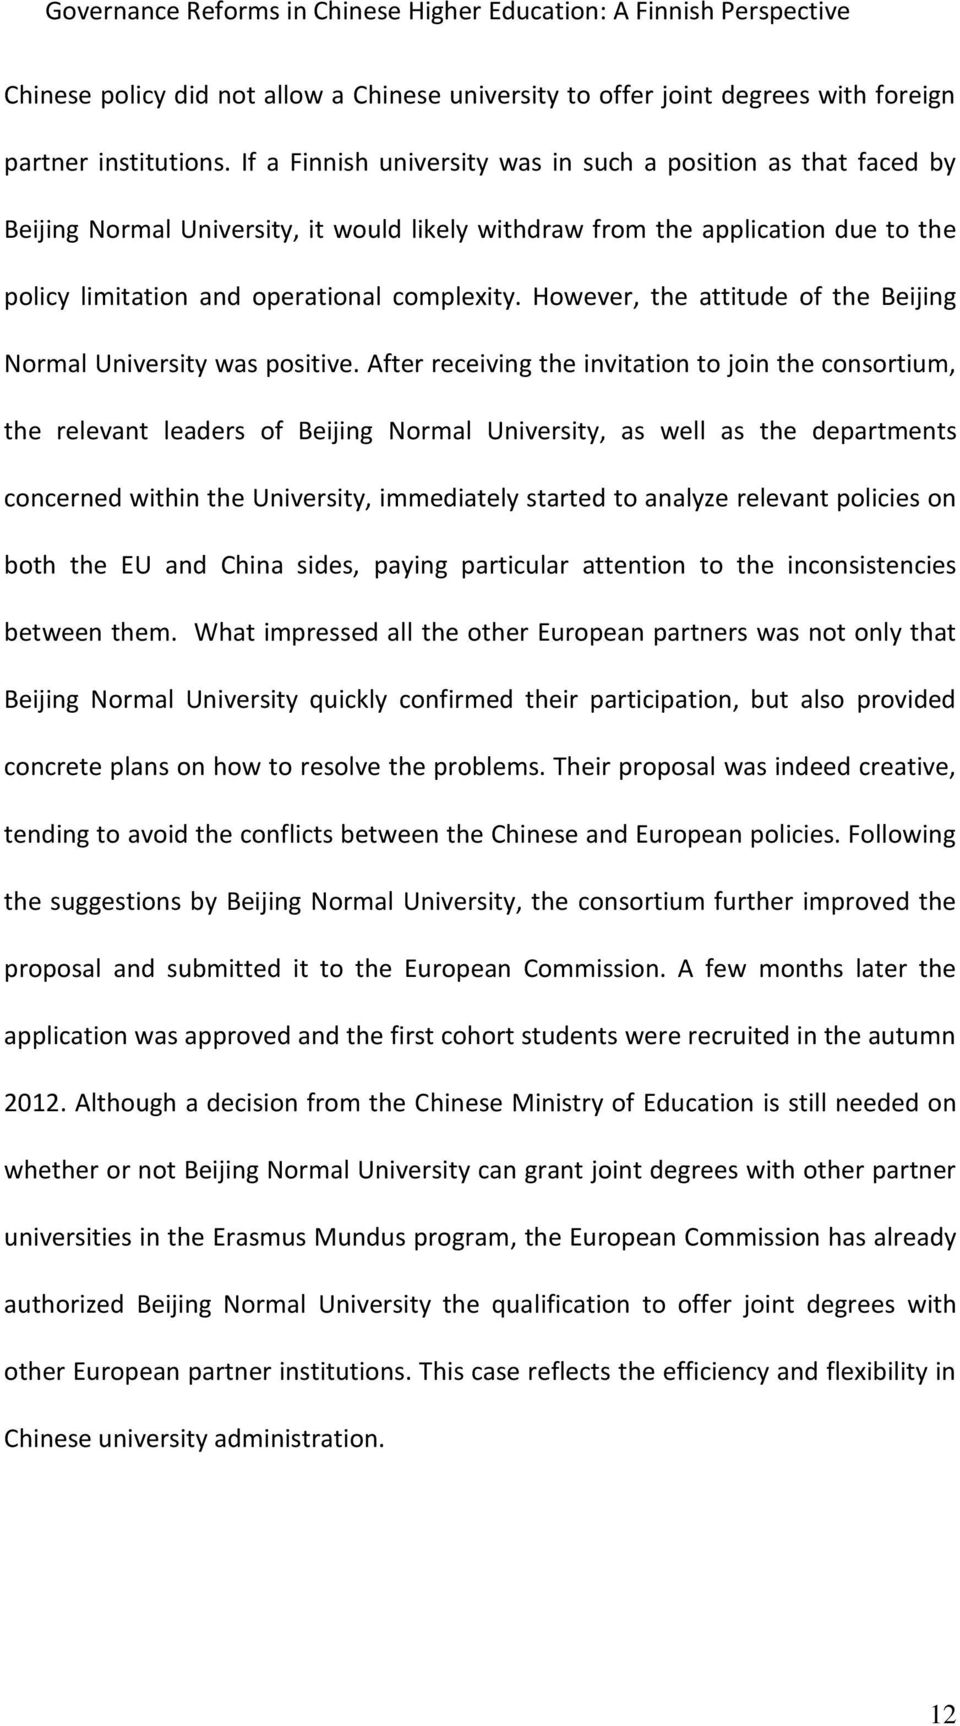 However, the attitude of the Beijing Normal University was positive.